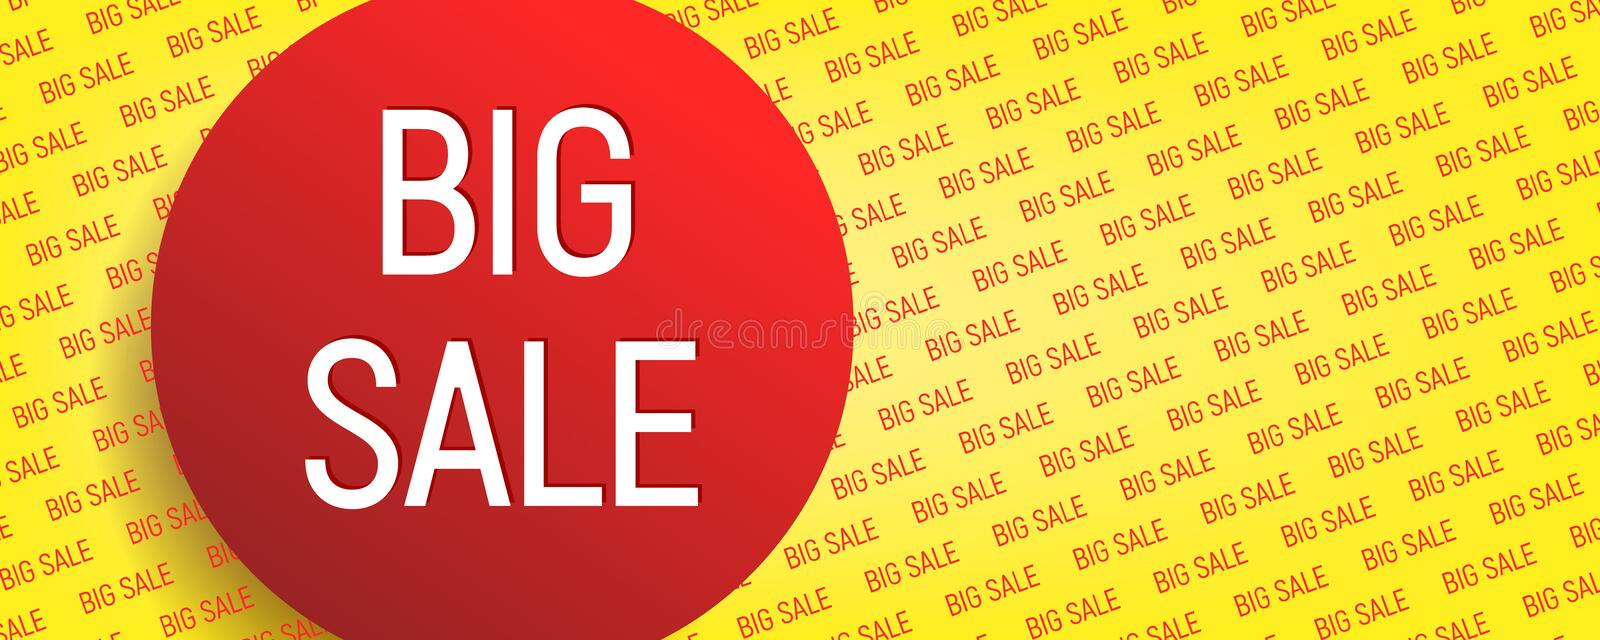 Big sale banner. Poster in yellow and red colors with text vector illustration